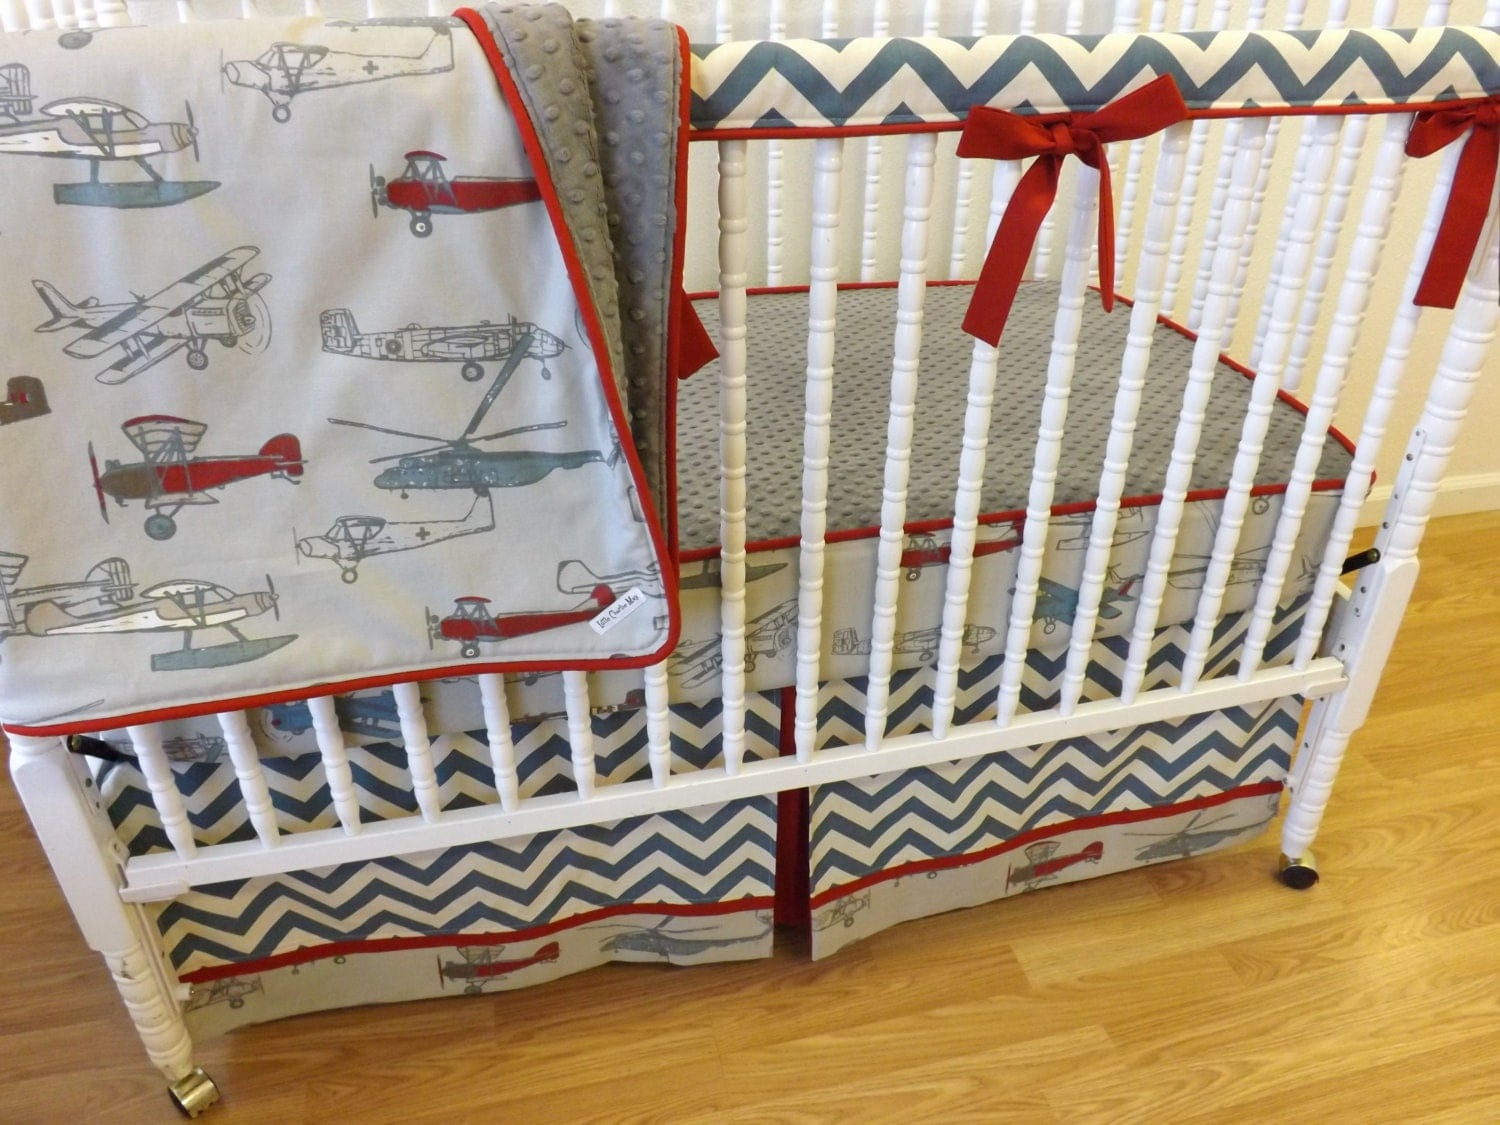 Bumperless airplane crib bedding made to by littlecharliemay - Airplane crib bedding sets ...